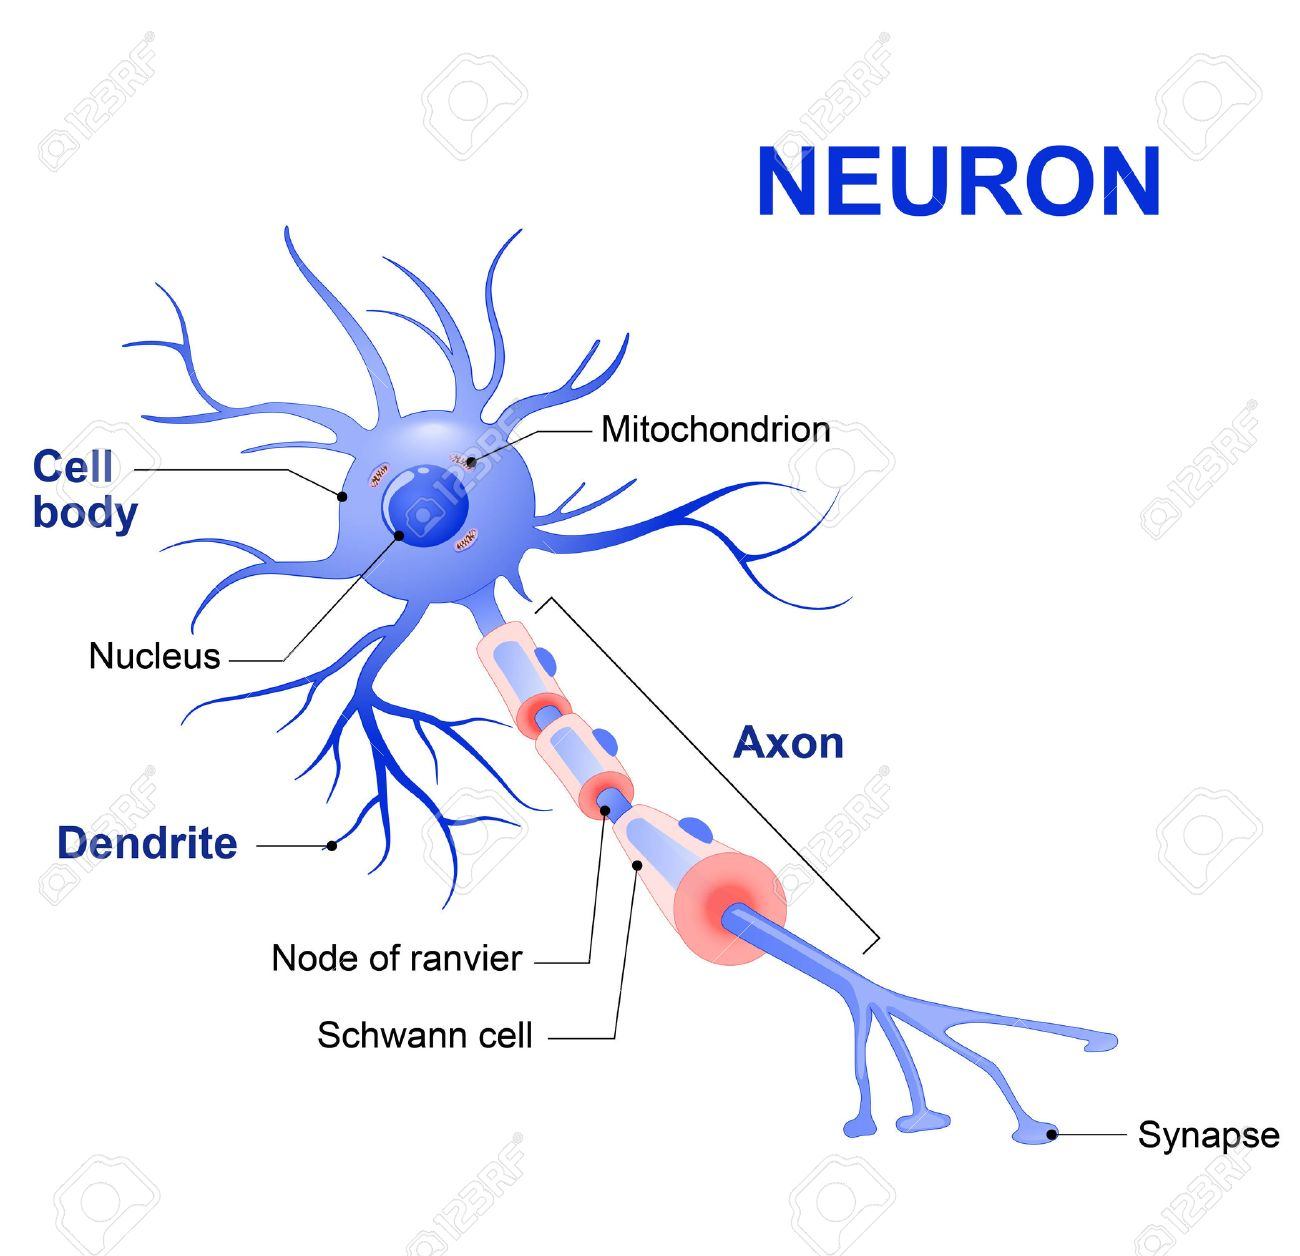 Anatomy of a typical human neuron axon synapse dendrite anatomy of a typical human neuron axon synapse dendrite mitochondrion myelin ccuart Gallery